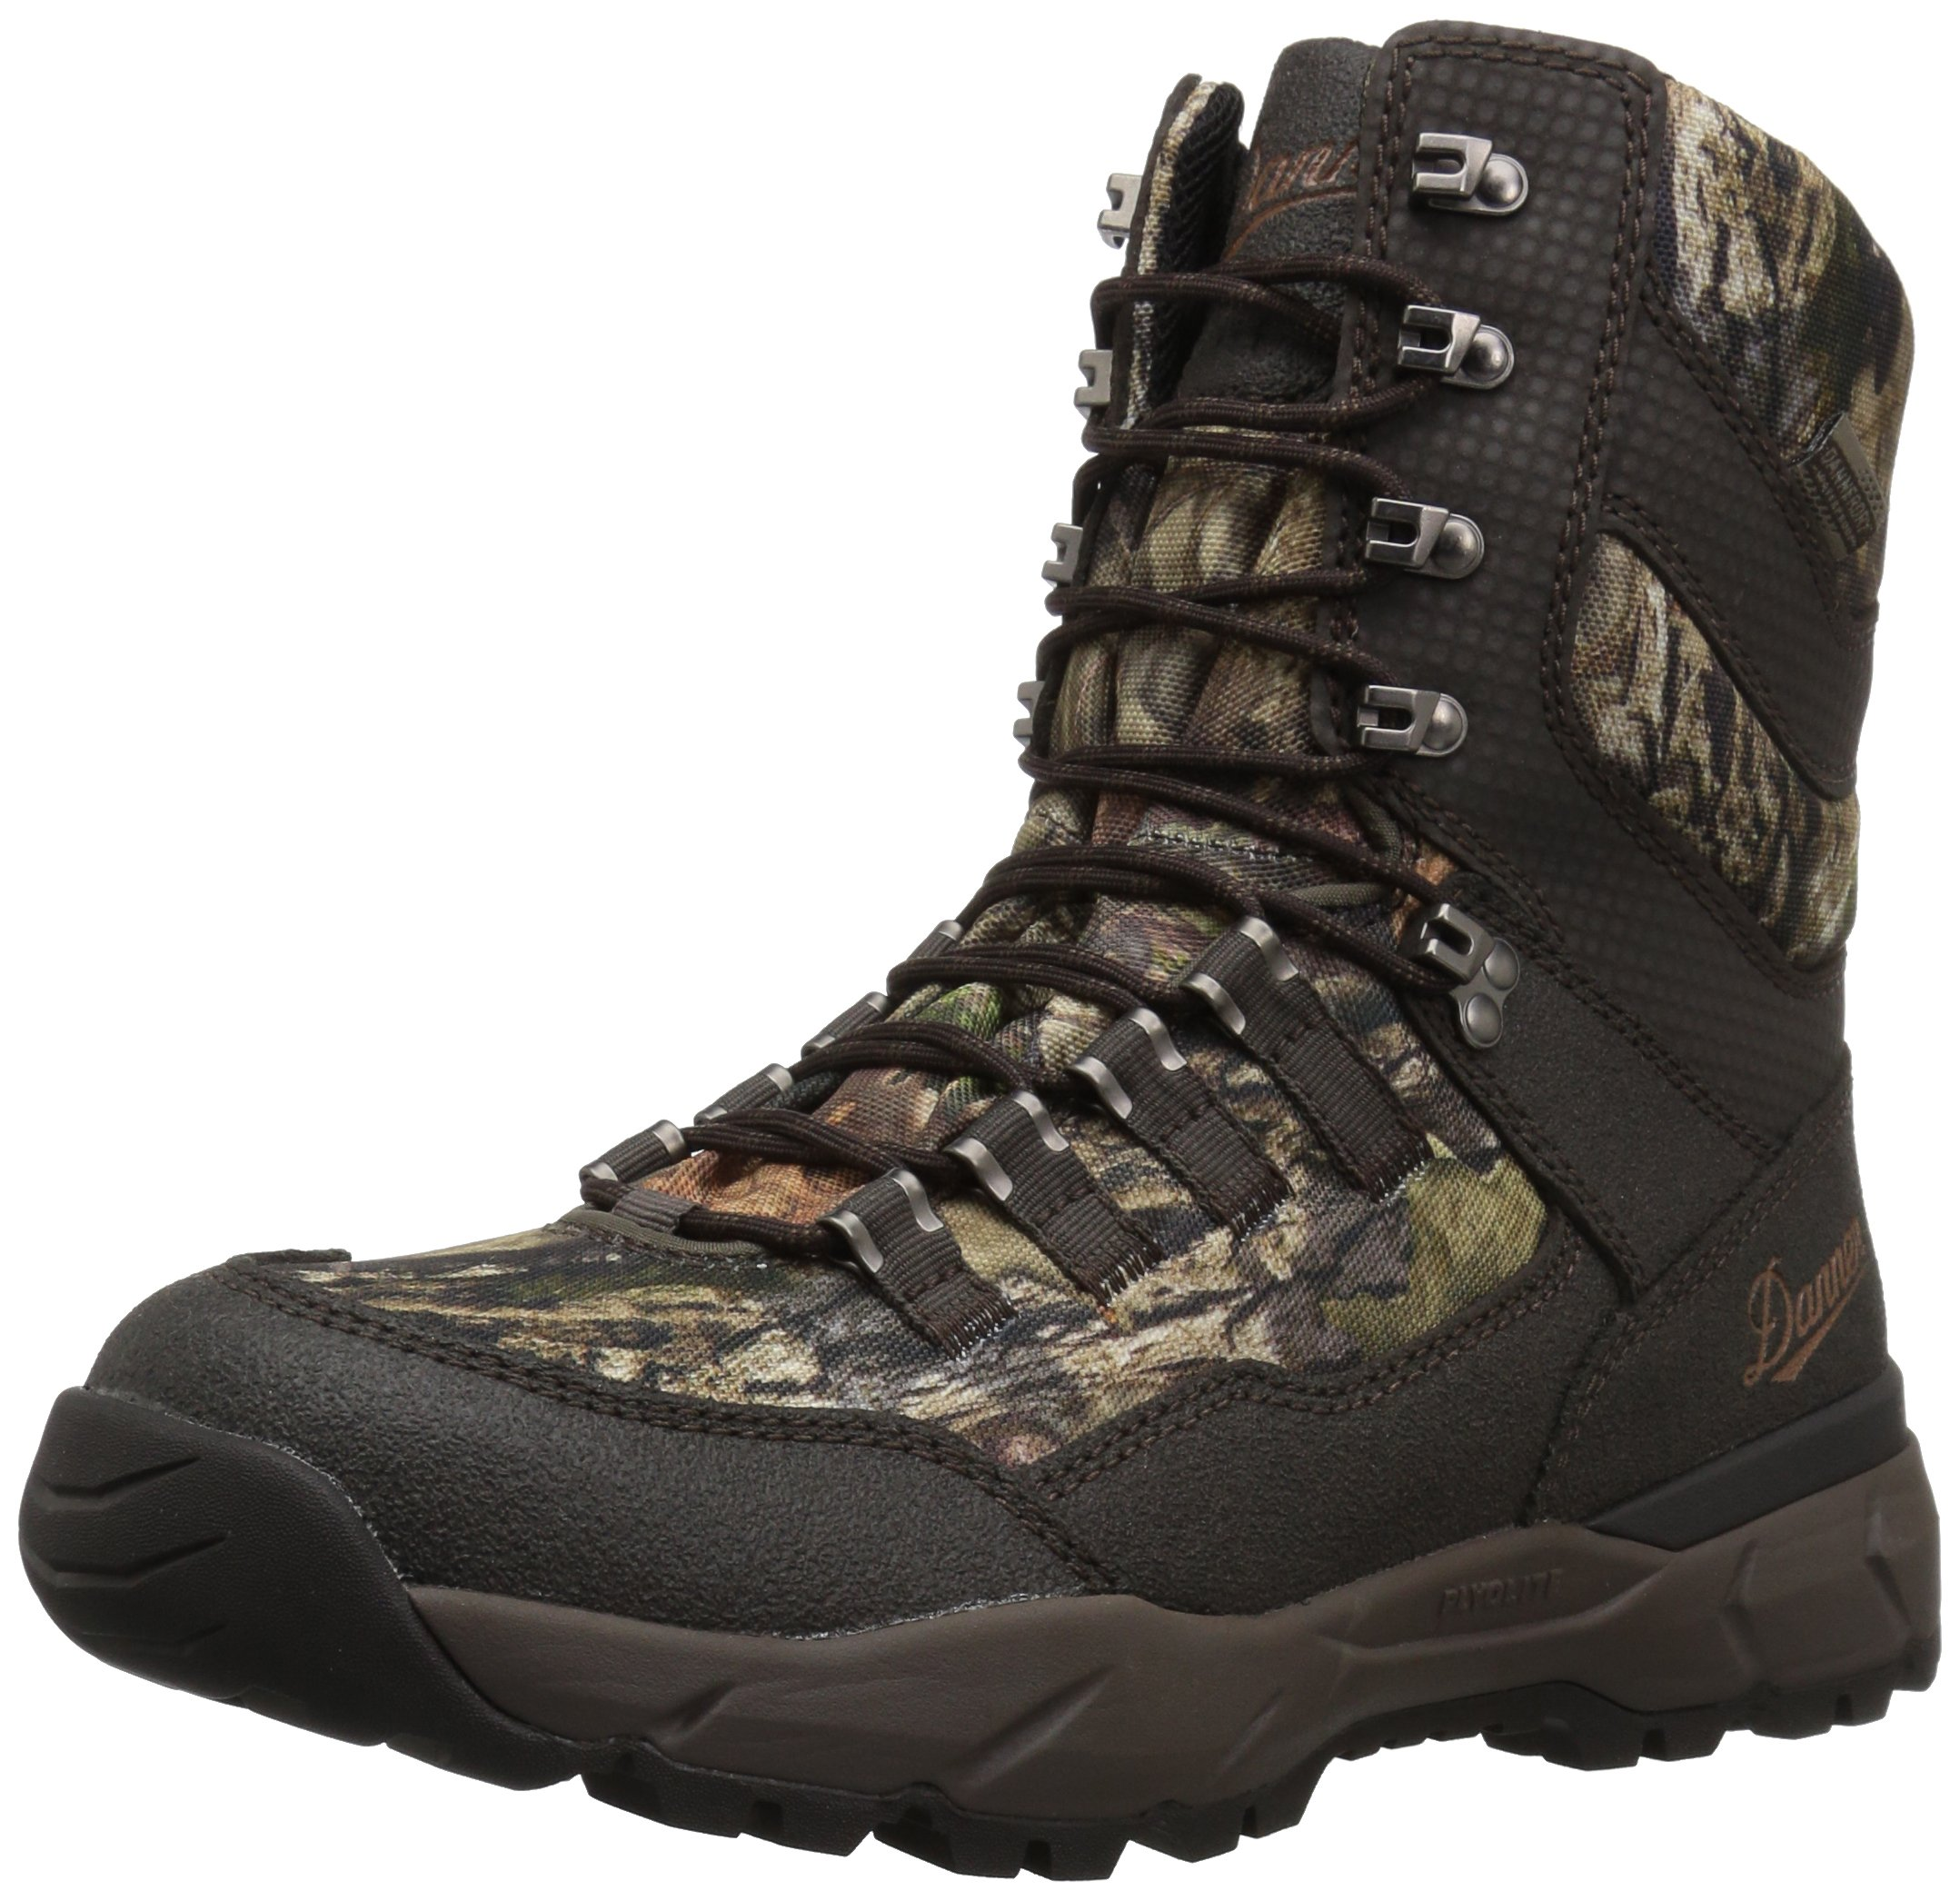 Danner Men's Vital Insulated 400G Hunting Shoes, Mossy Oak Break Up Country, 8.5 D US by Danner (Image #1)